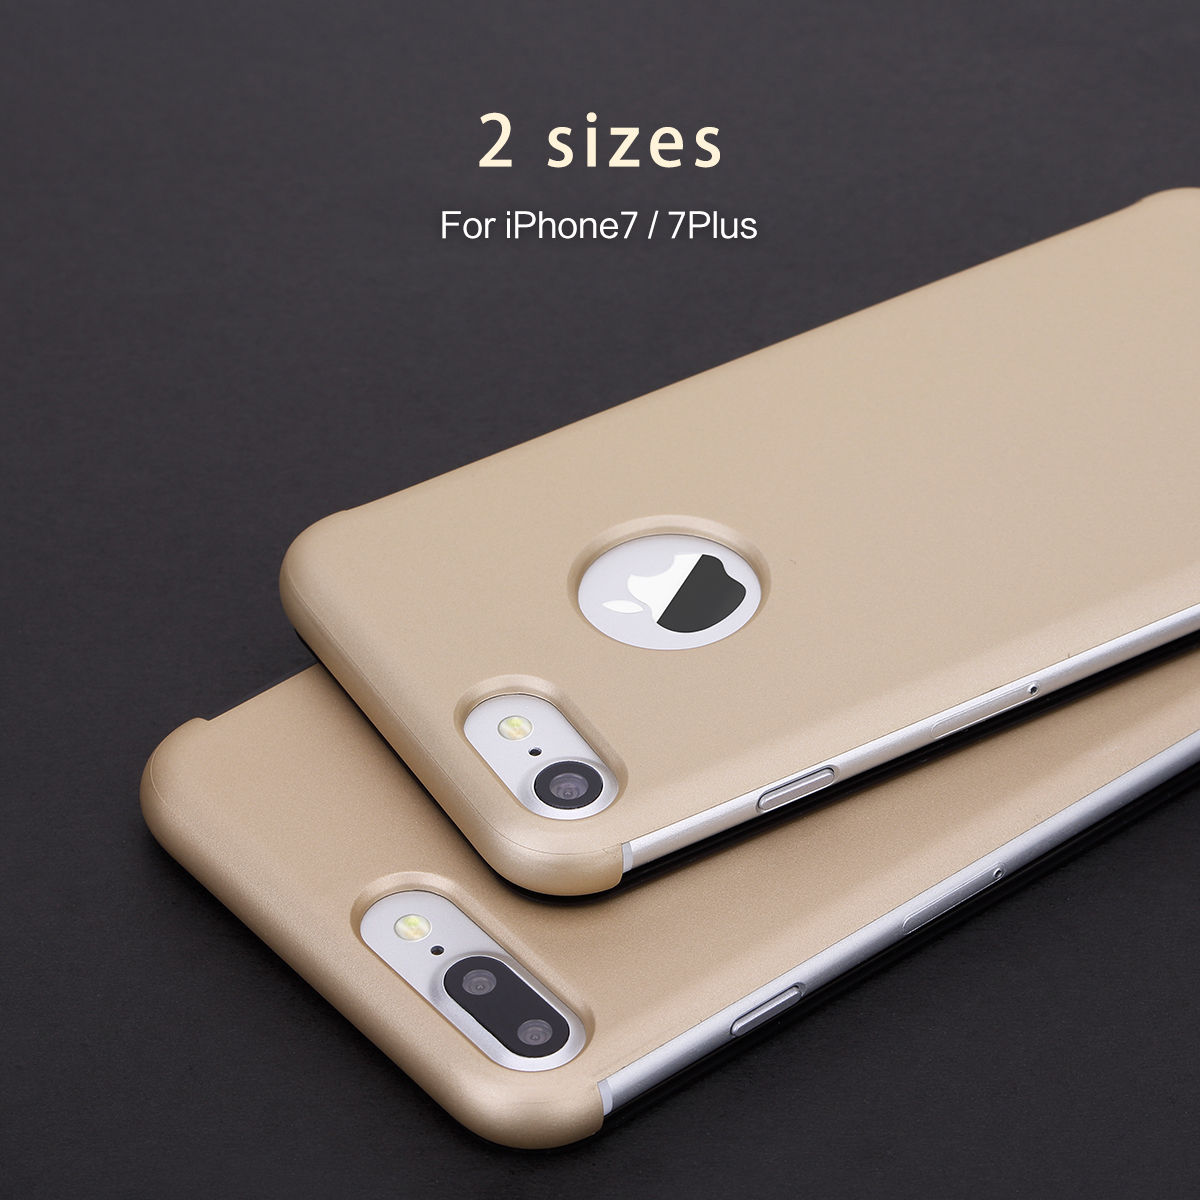 low priced a43ba ad9c9 US $23.79 |Luxury Smart Phone Case For iphone 7 7Plus Original Invisible  Full View Window Touchable Flip Cover Coque For iPhone 7 Plus Case-in Flip  ...